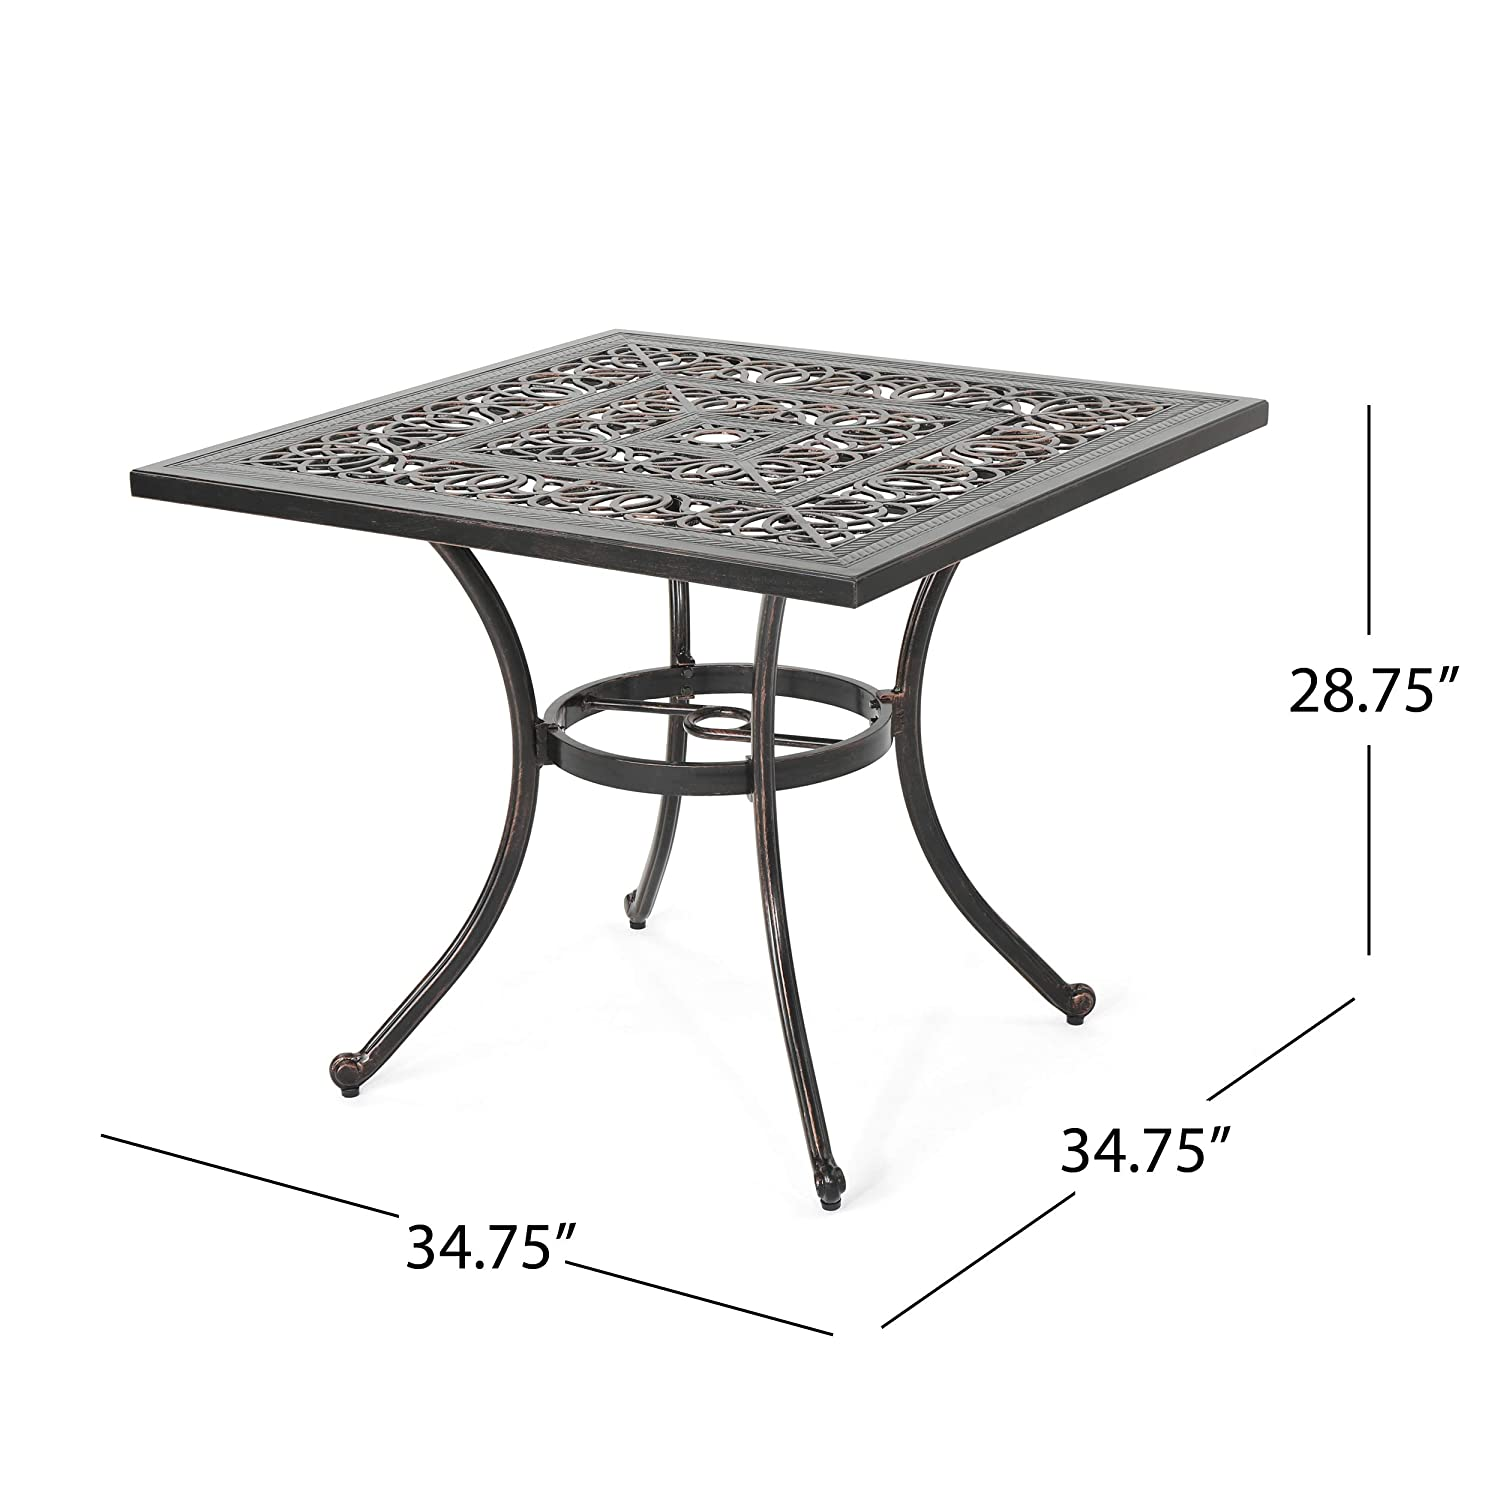 Shiny Copper Christopher Knight Home Jamie Outdoor Square Cast Aluminum Dining Table